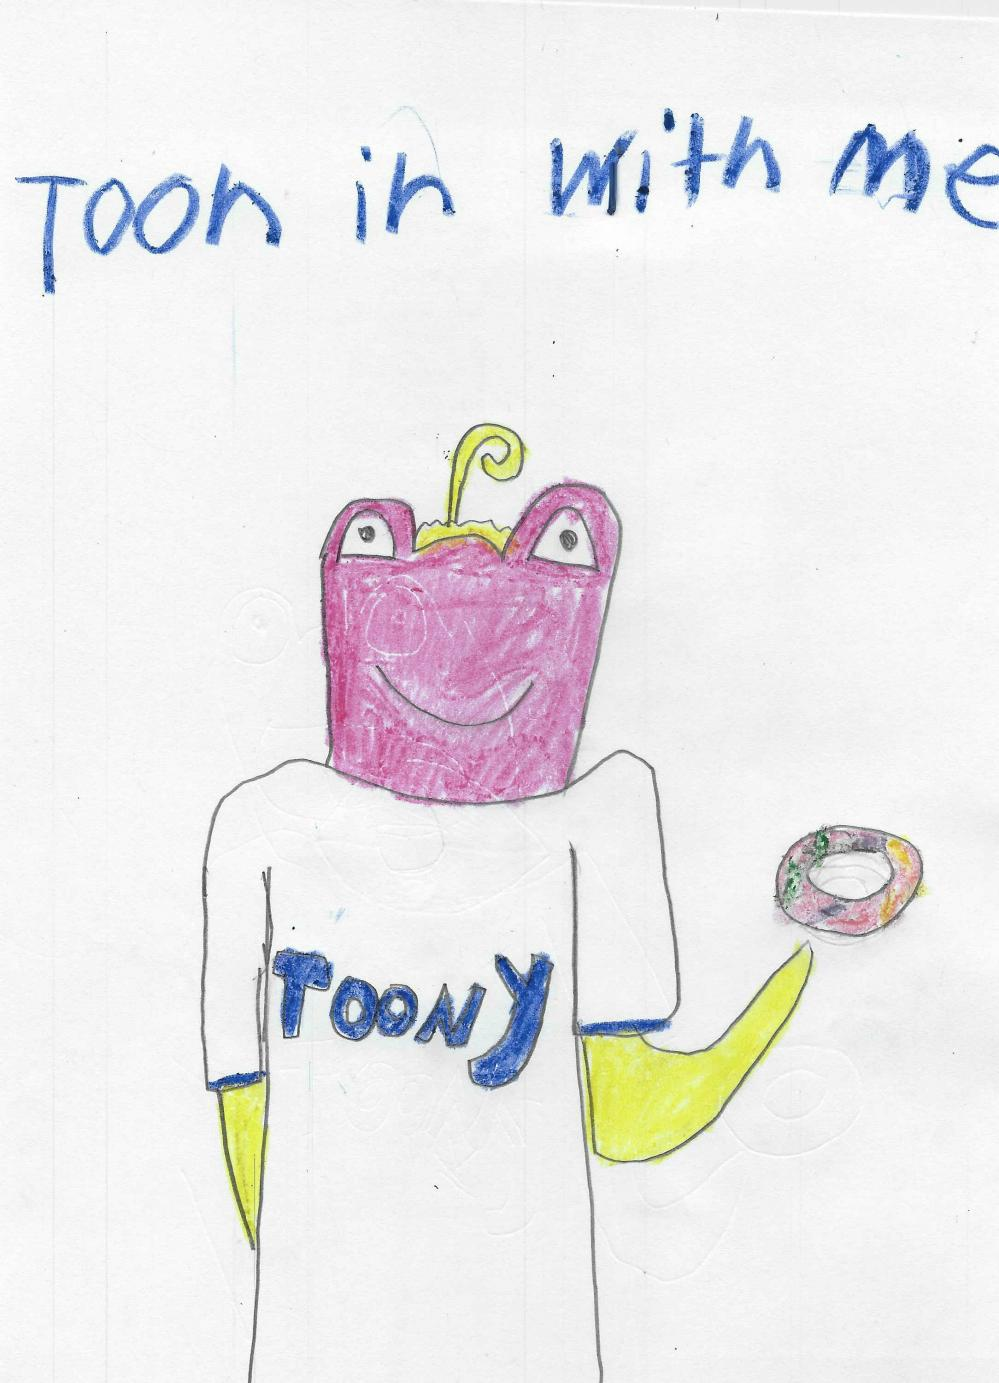 My family and I love watching Toony every morning! They are the best cartoons and make us laugh!